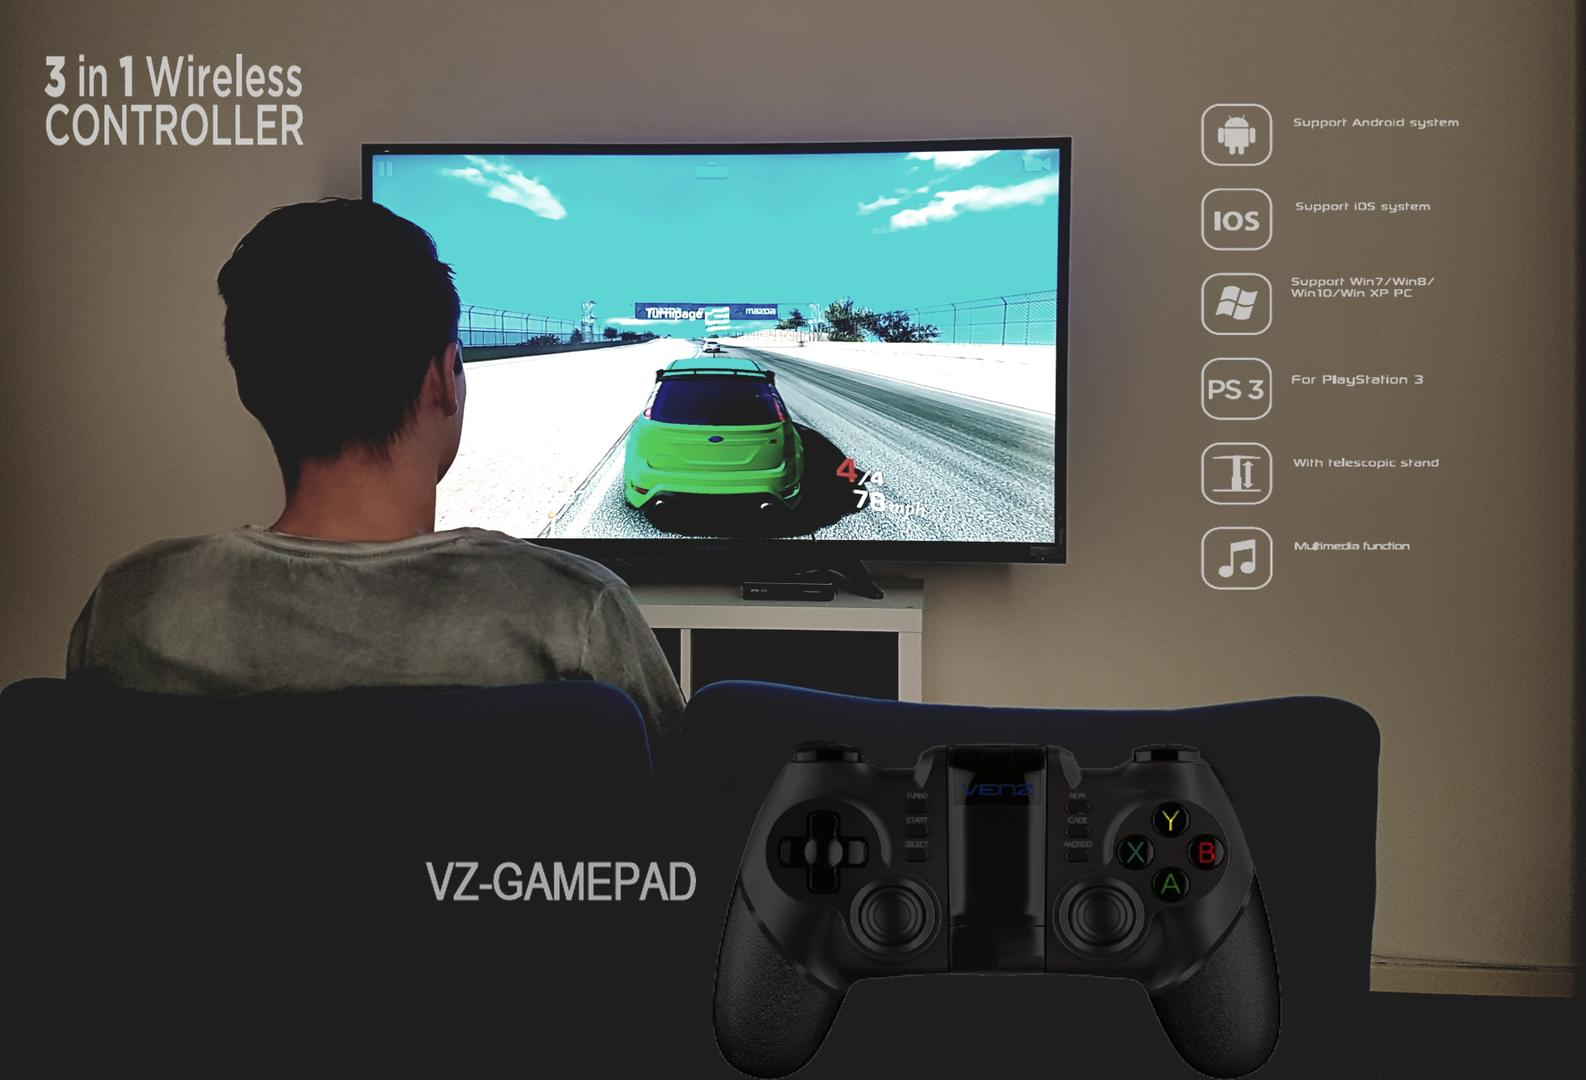 VZ-GAMEPAD